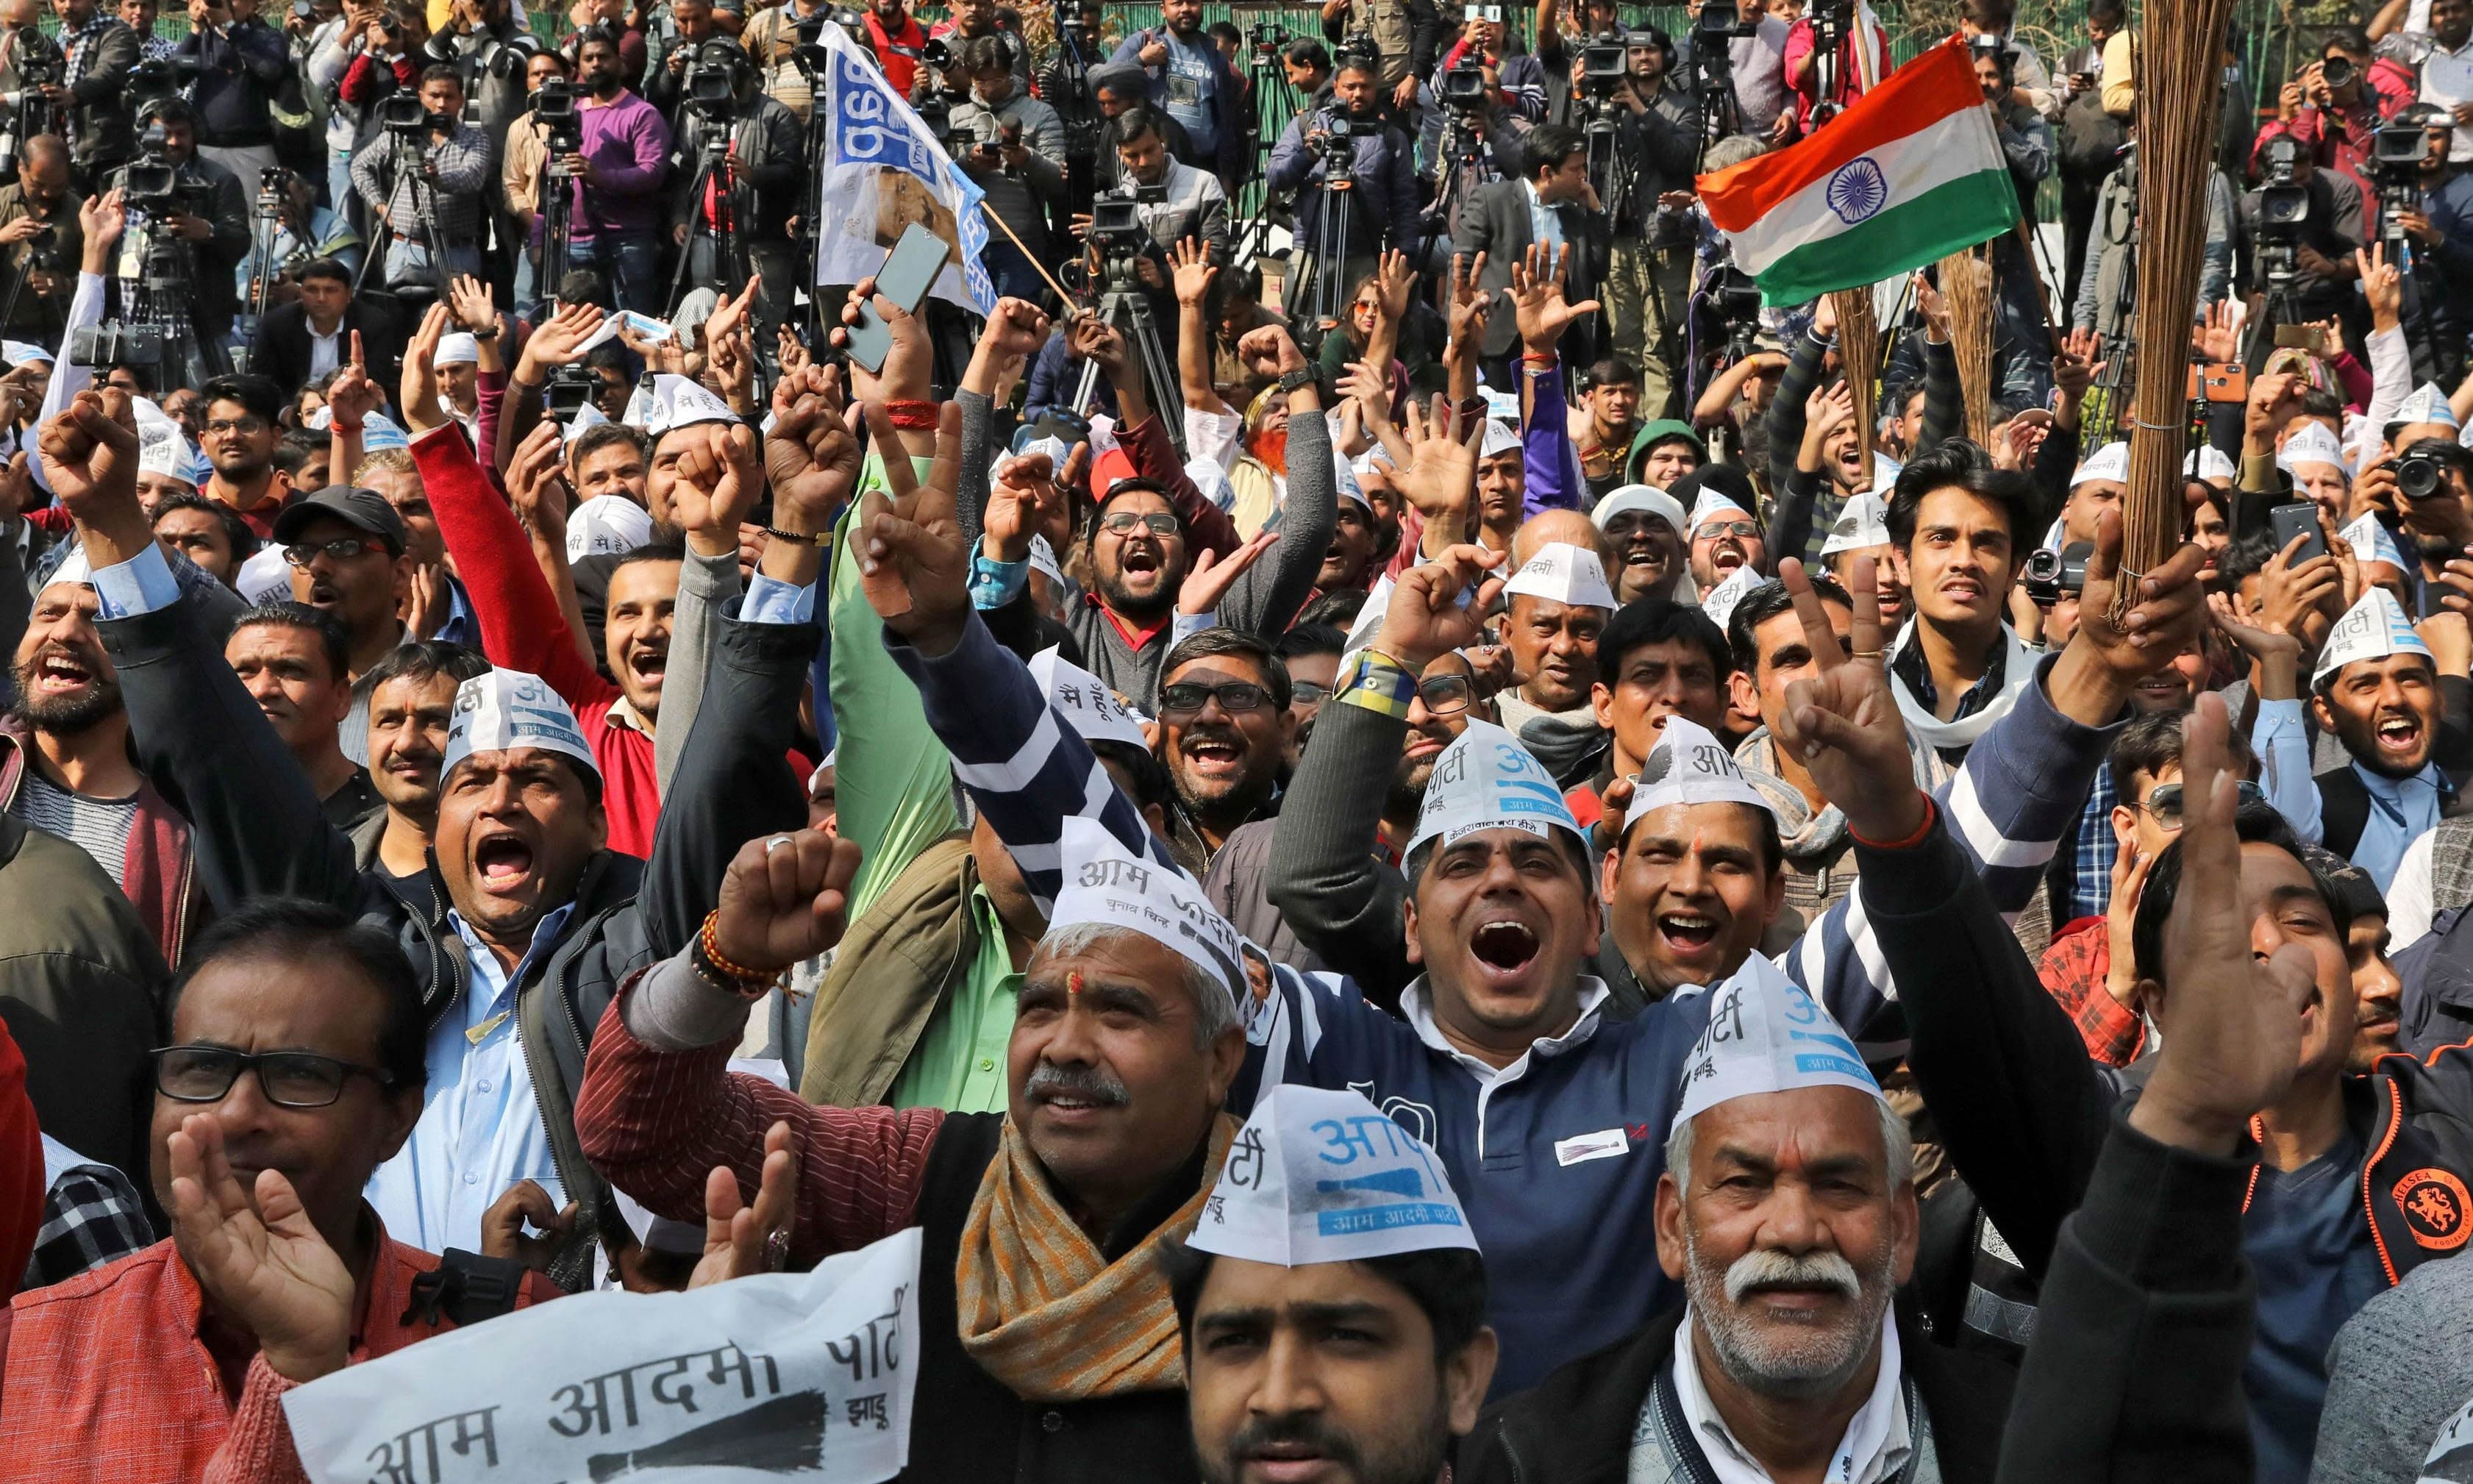 Supporters of Aam Aadmi Party celebrate after learning of the initial poll results outside its party headquarters in New Delhi on Feb 11. — Reuters